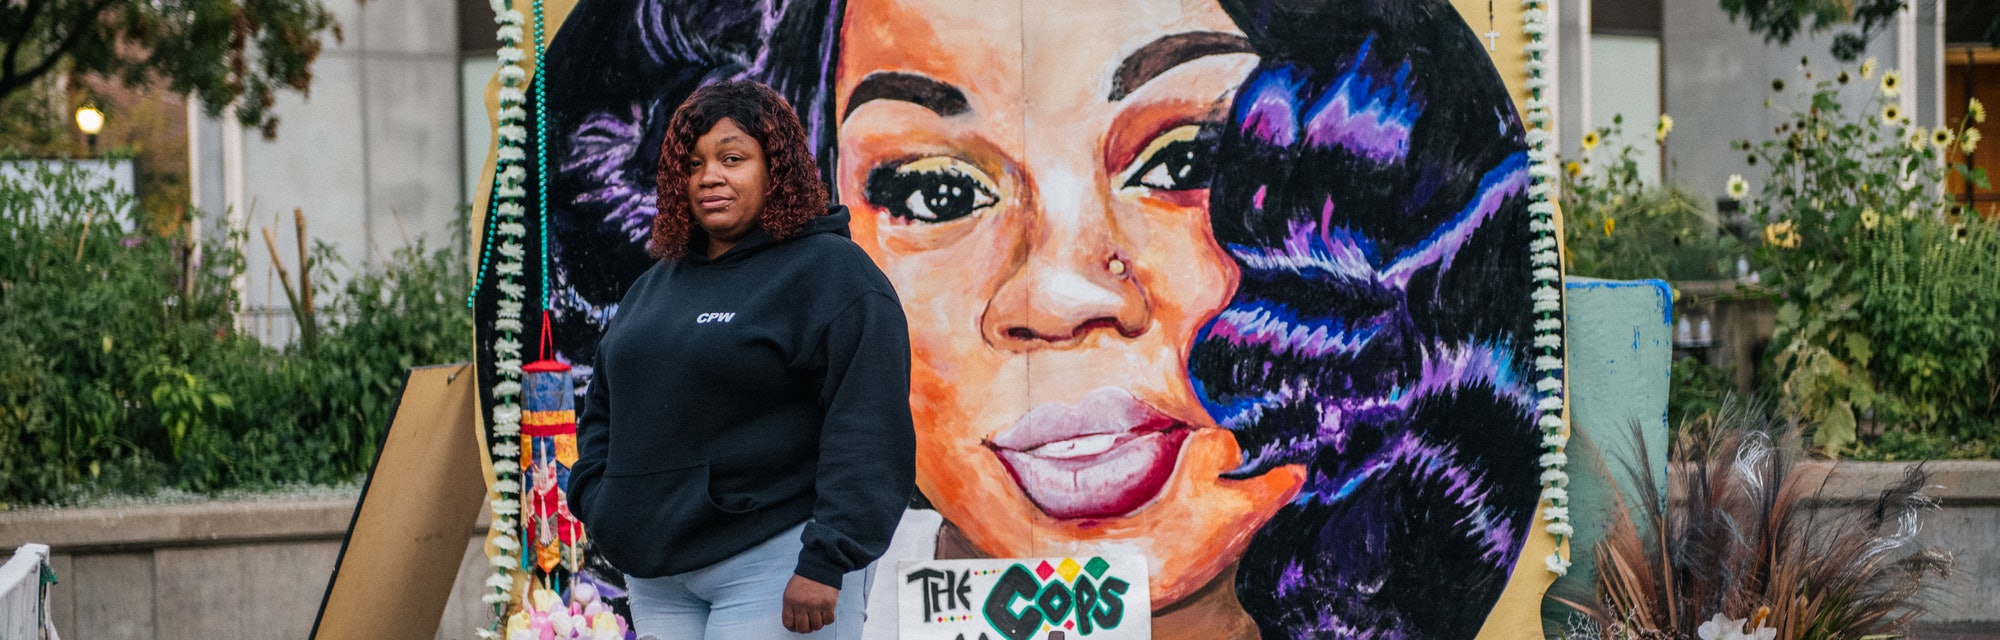 Tamika Palmer, mother of Breonna Taylor, poses for a portrait in front of a mural of her daughter at Jefferson Square park on September 21, 2020 in Louisville, Kentucky. Demonstrators gathered to prepare for possible unrest in wake of the Grand Jury decision regarding the officers involved in the killing of Breonna Taylor. Taylor was fatally shot by Louisville Metro Police officers during a no-knock warrant at her apartment on March 13, 2020 in Louisville, Kentucky. Demonstrators have occupied the park for 118 days.